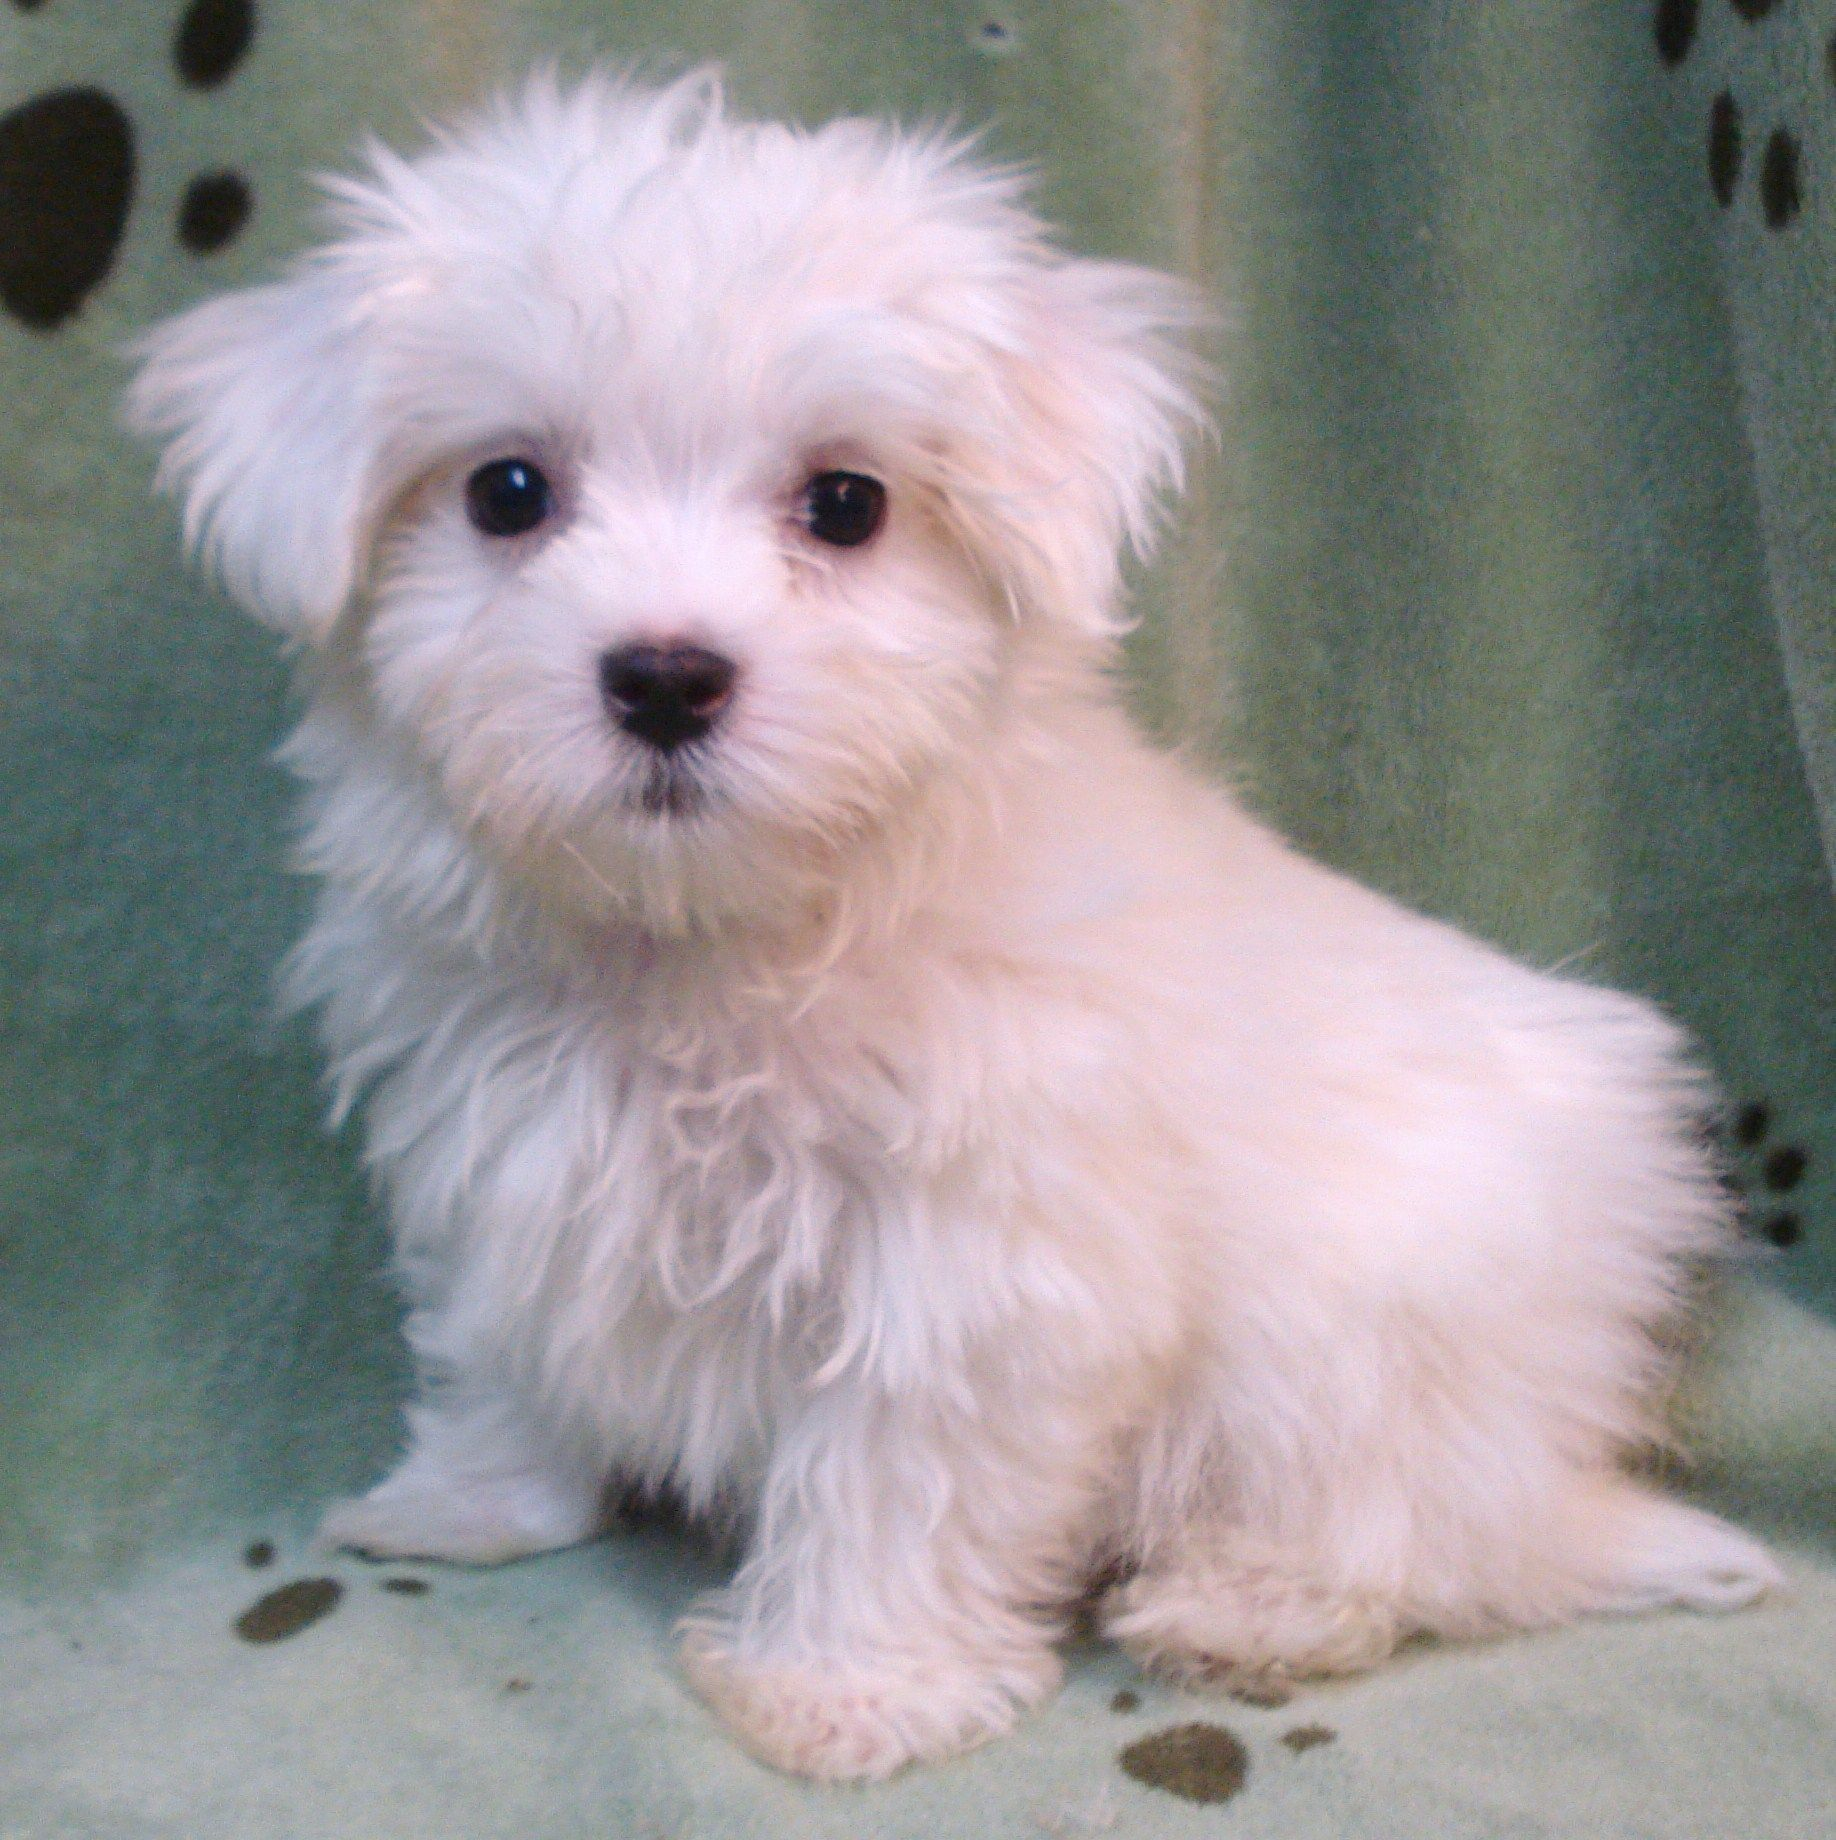 Teacup Puppies For Sale In Brooklyn New York Teacup Puppies